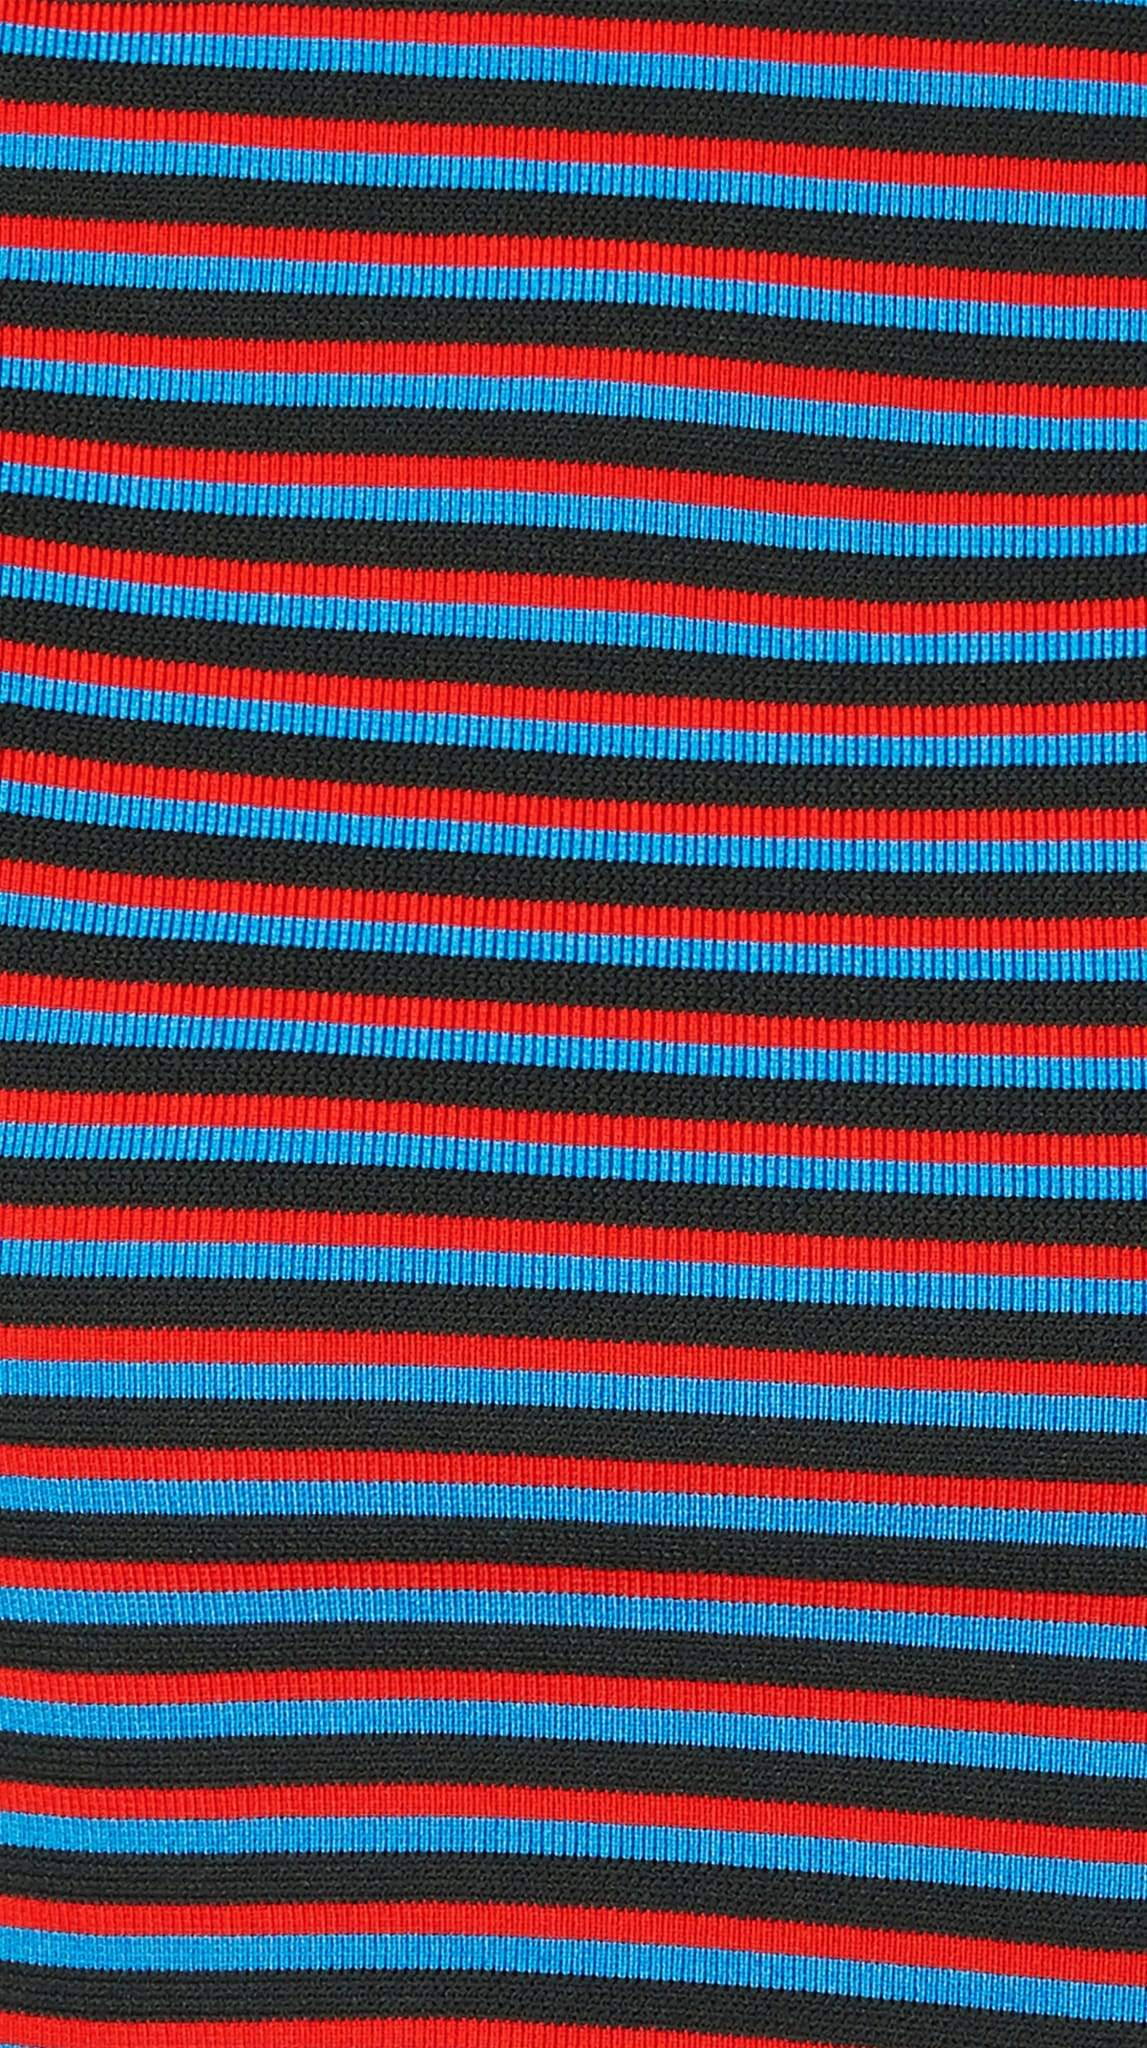 Red, Blue and Black Striped Stretch Crop Top Turtle Neck by Meghan Hughes | Nineteenth Amendment